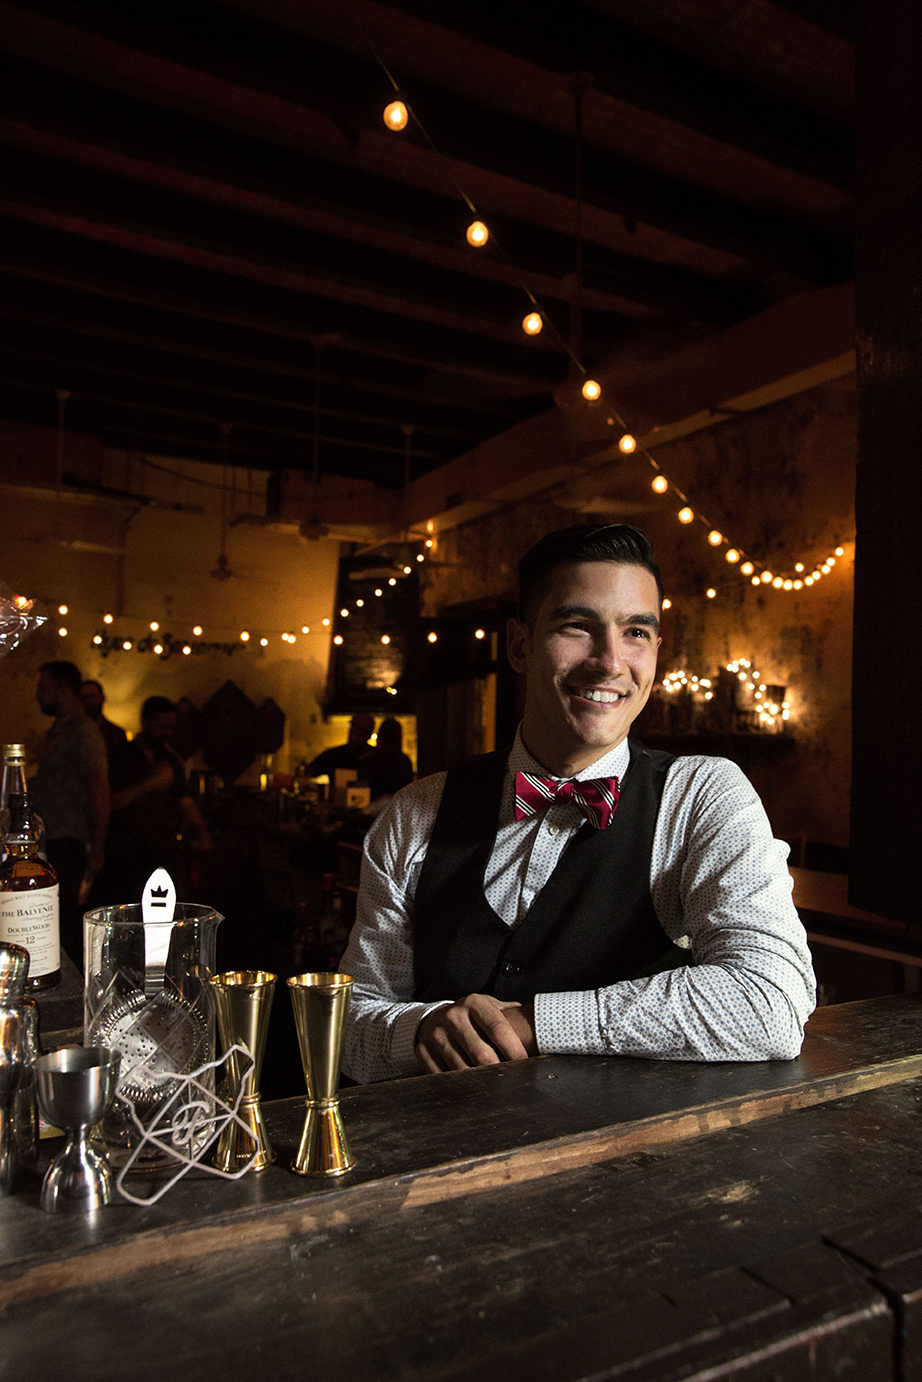 Roberto Berdecia from La Factoria in Old San Juan was named Bartender of the Year 2017 by the International Rum Conference.